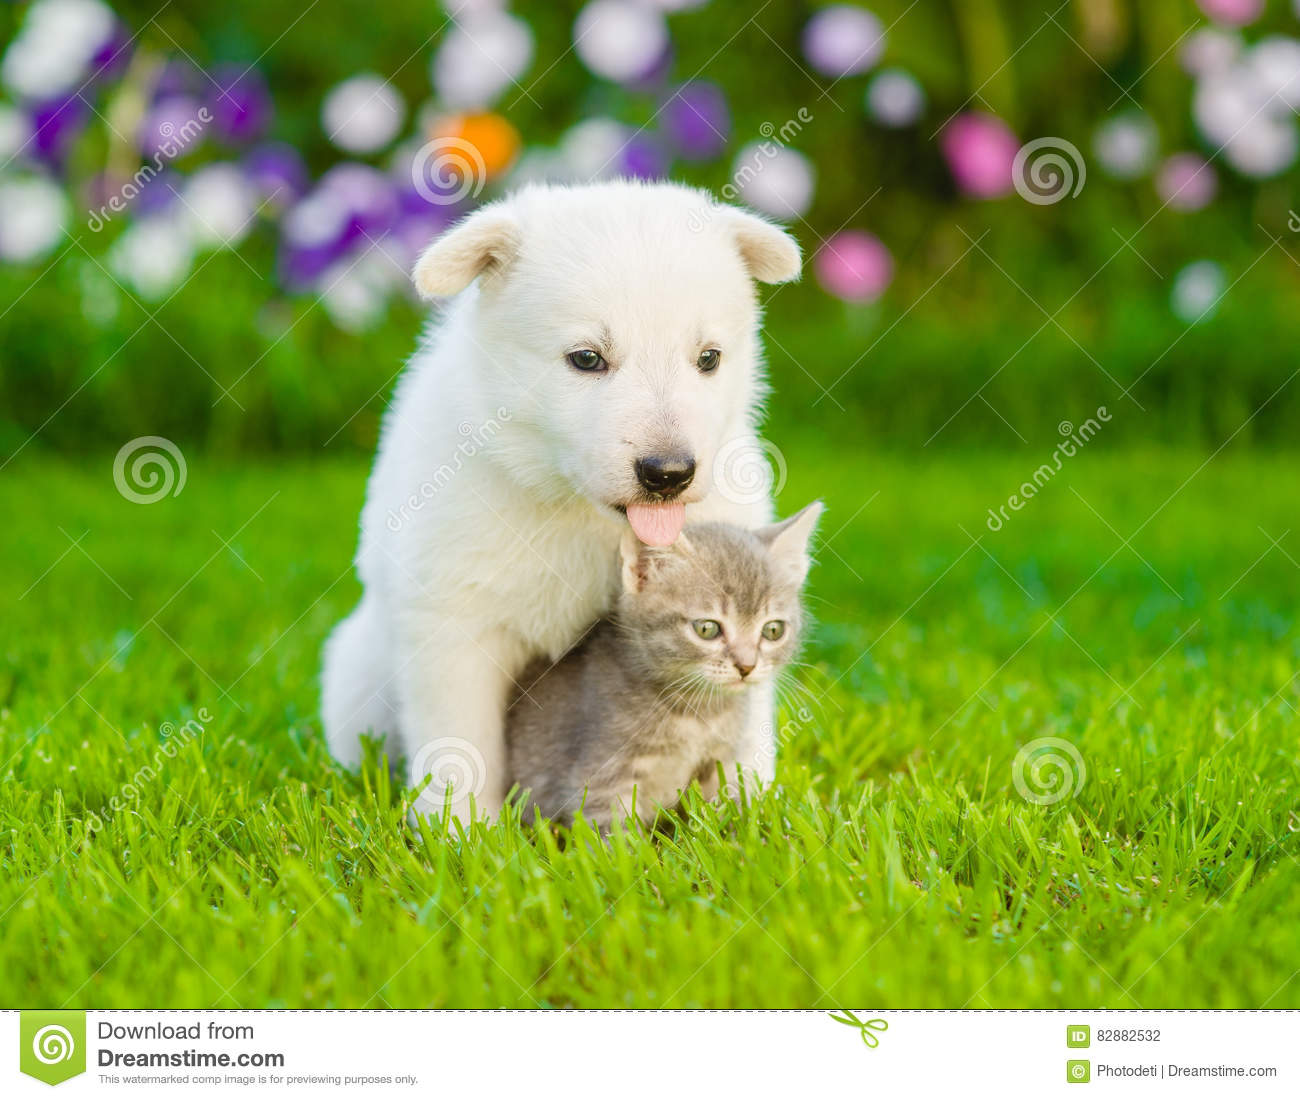 Dog with cat sitting together on green grass